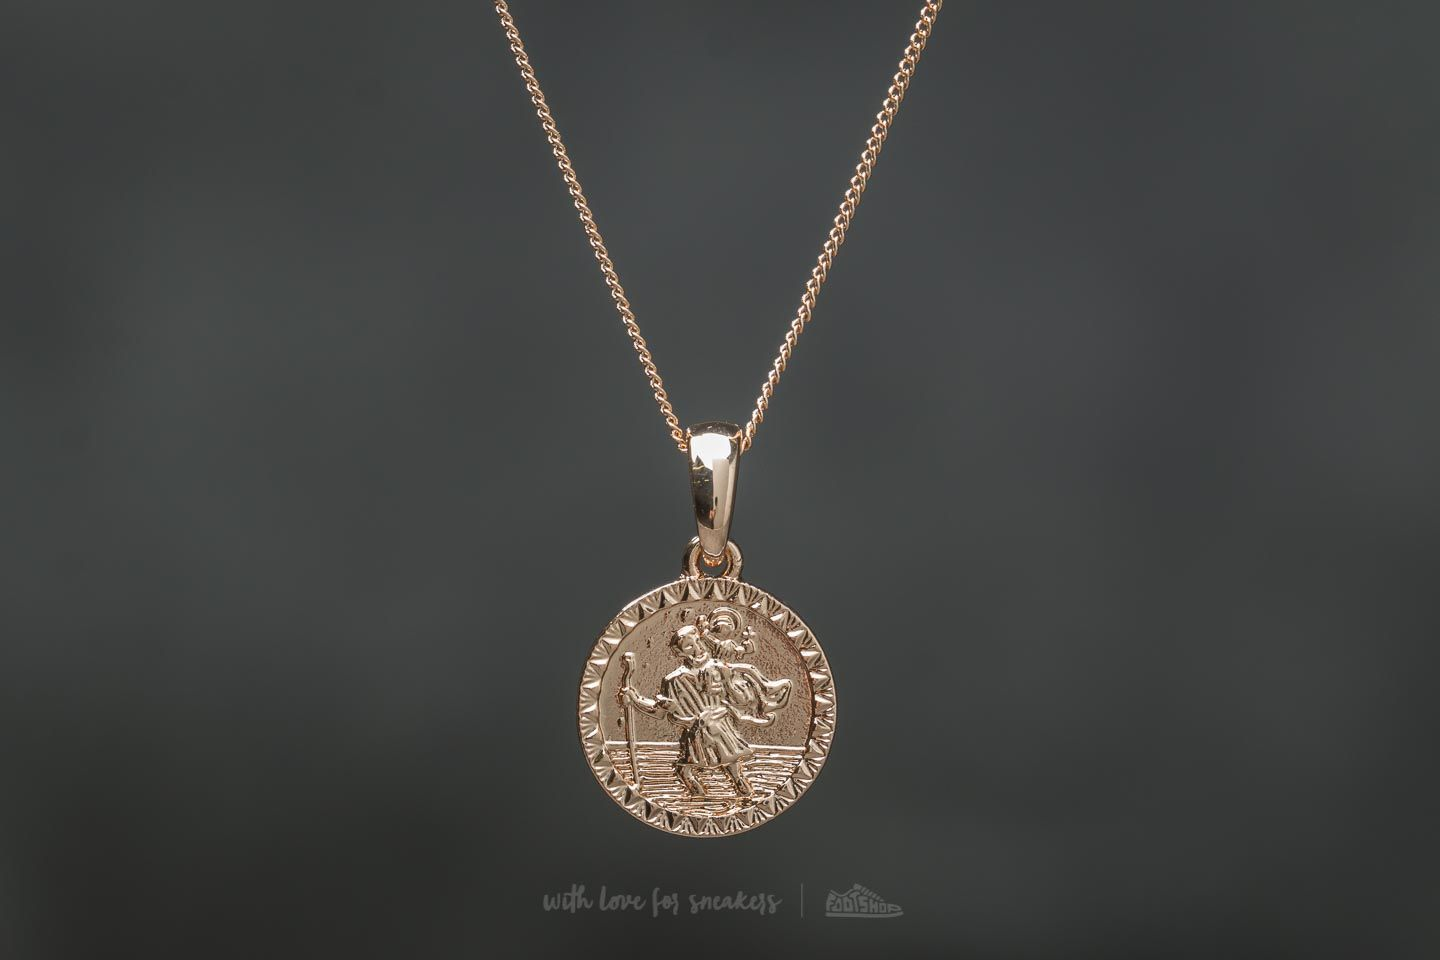 Chained and Able Old English Mini St. Christopher Necklace Gold - 19412